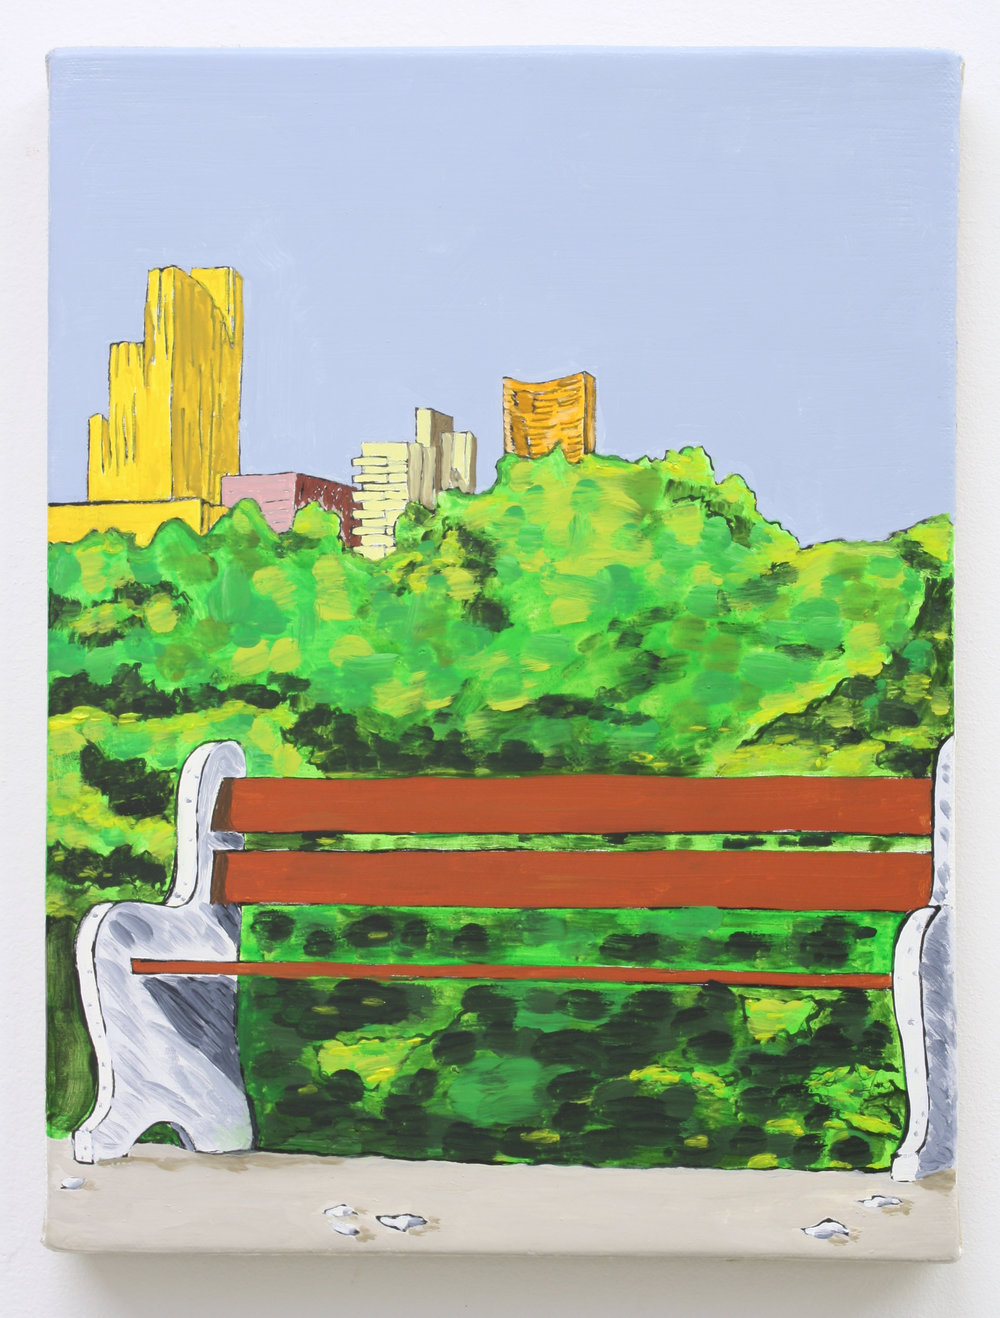 """Untitled,Park Bench w/ City"", 2014 , oil on Linen, 12 x 9 inches"